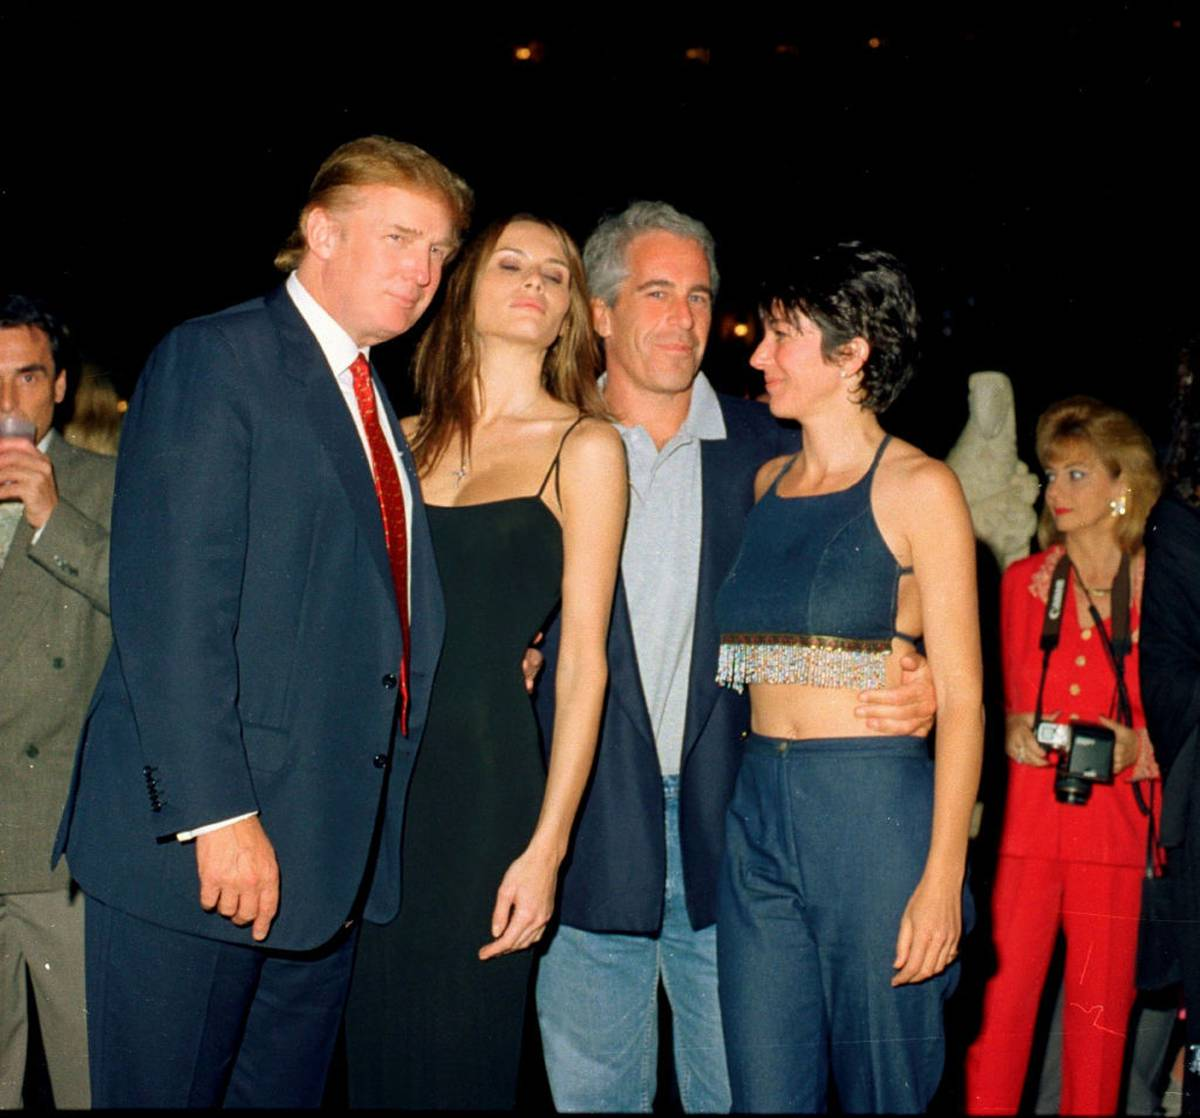 Fox News 'mistakenly' cropped Donald Trump out of Jeffrey Epstein, Ghislaine Maxwell photo